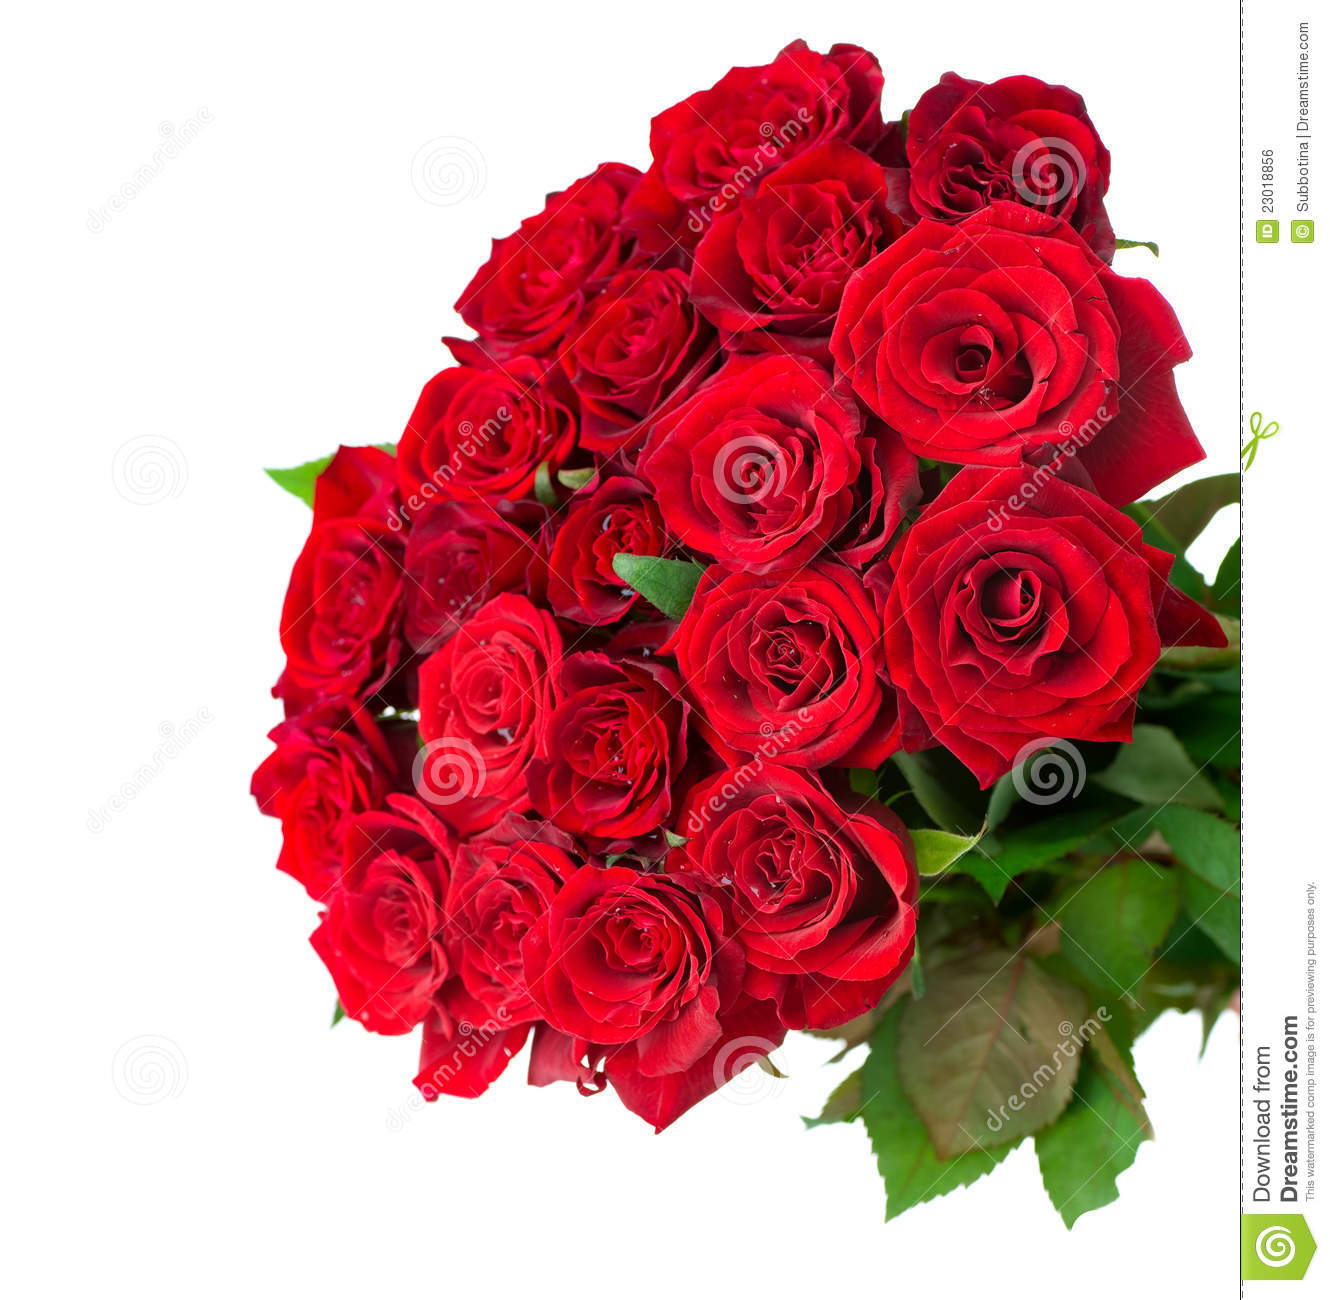 Rose flowers bouquet stock photo image of floral flower - Bunch of roses hd images ...